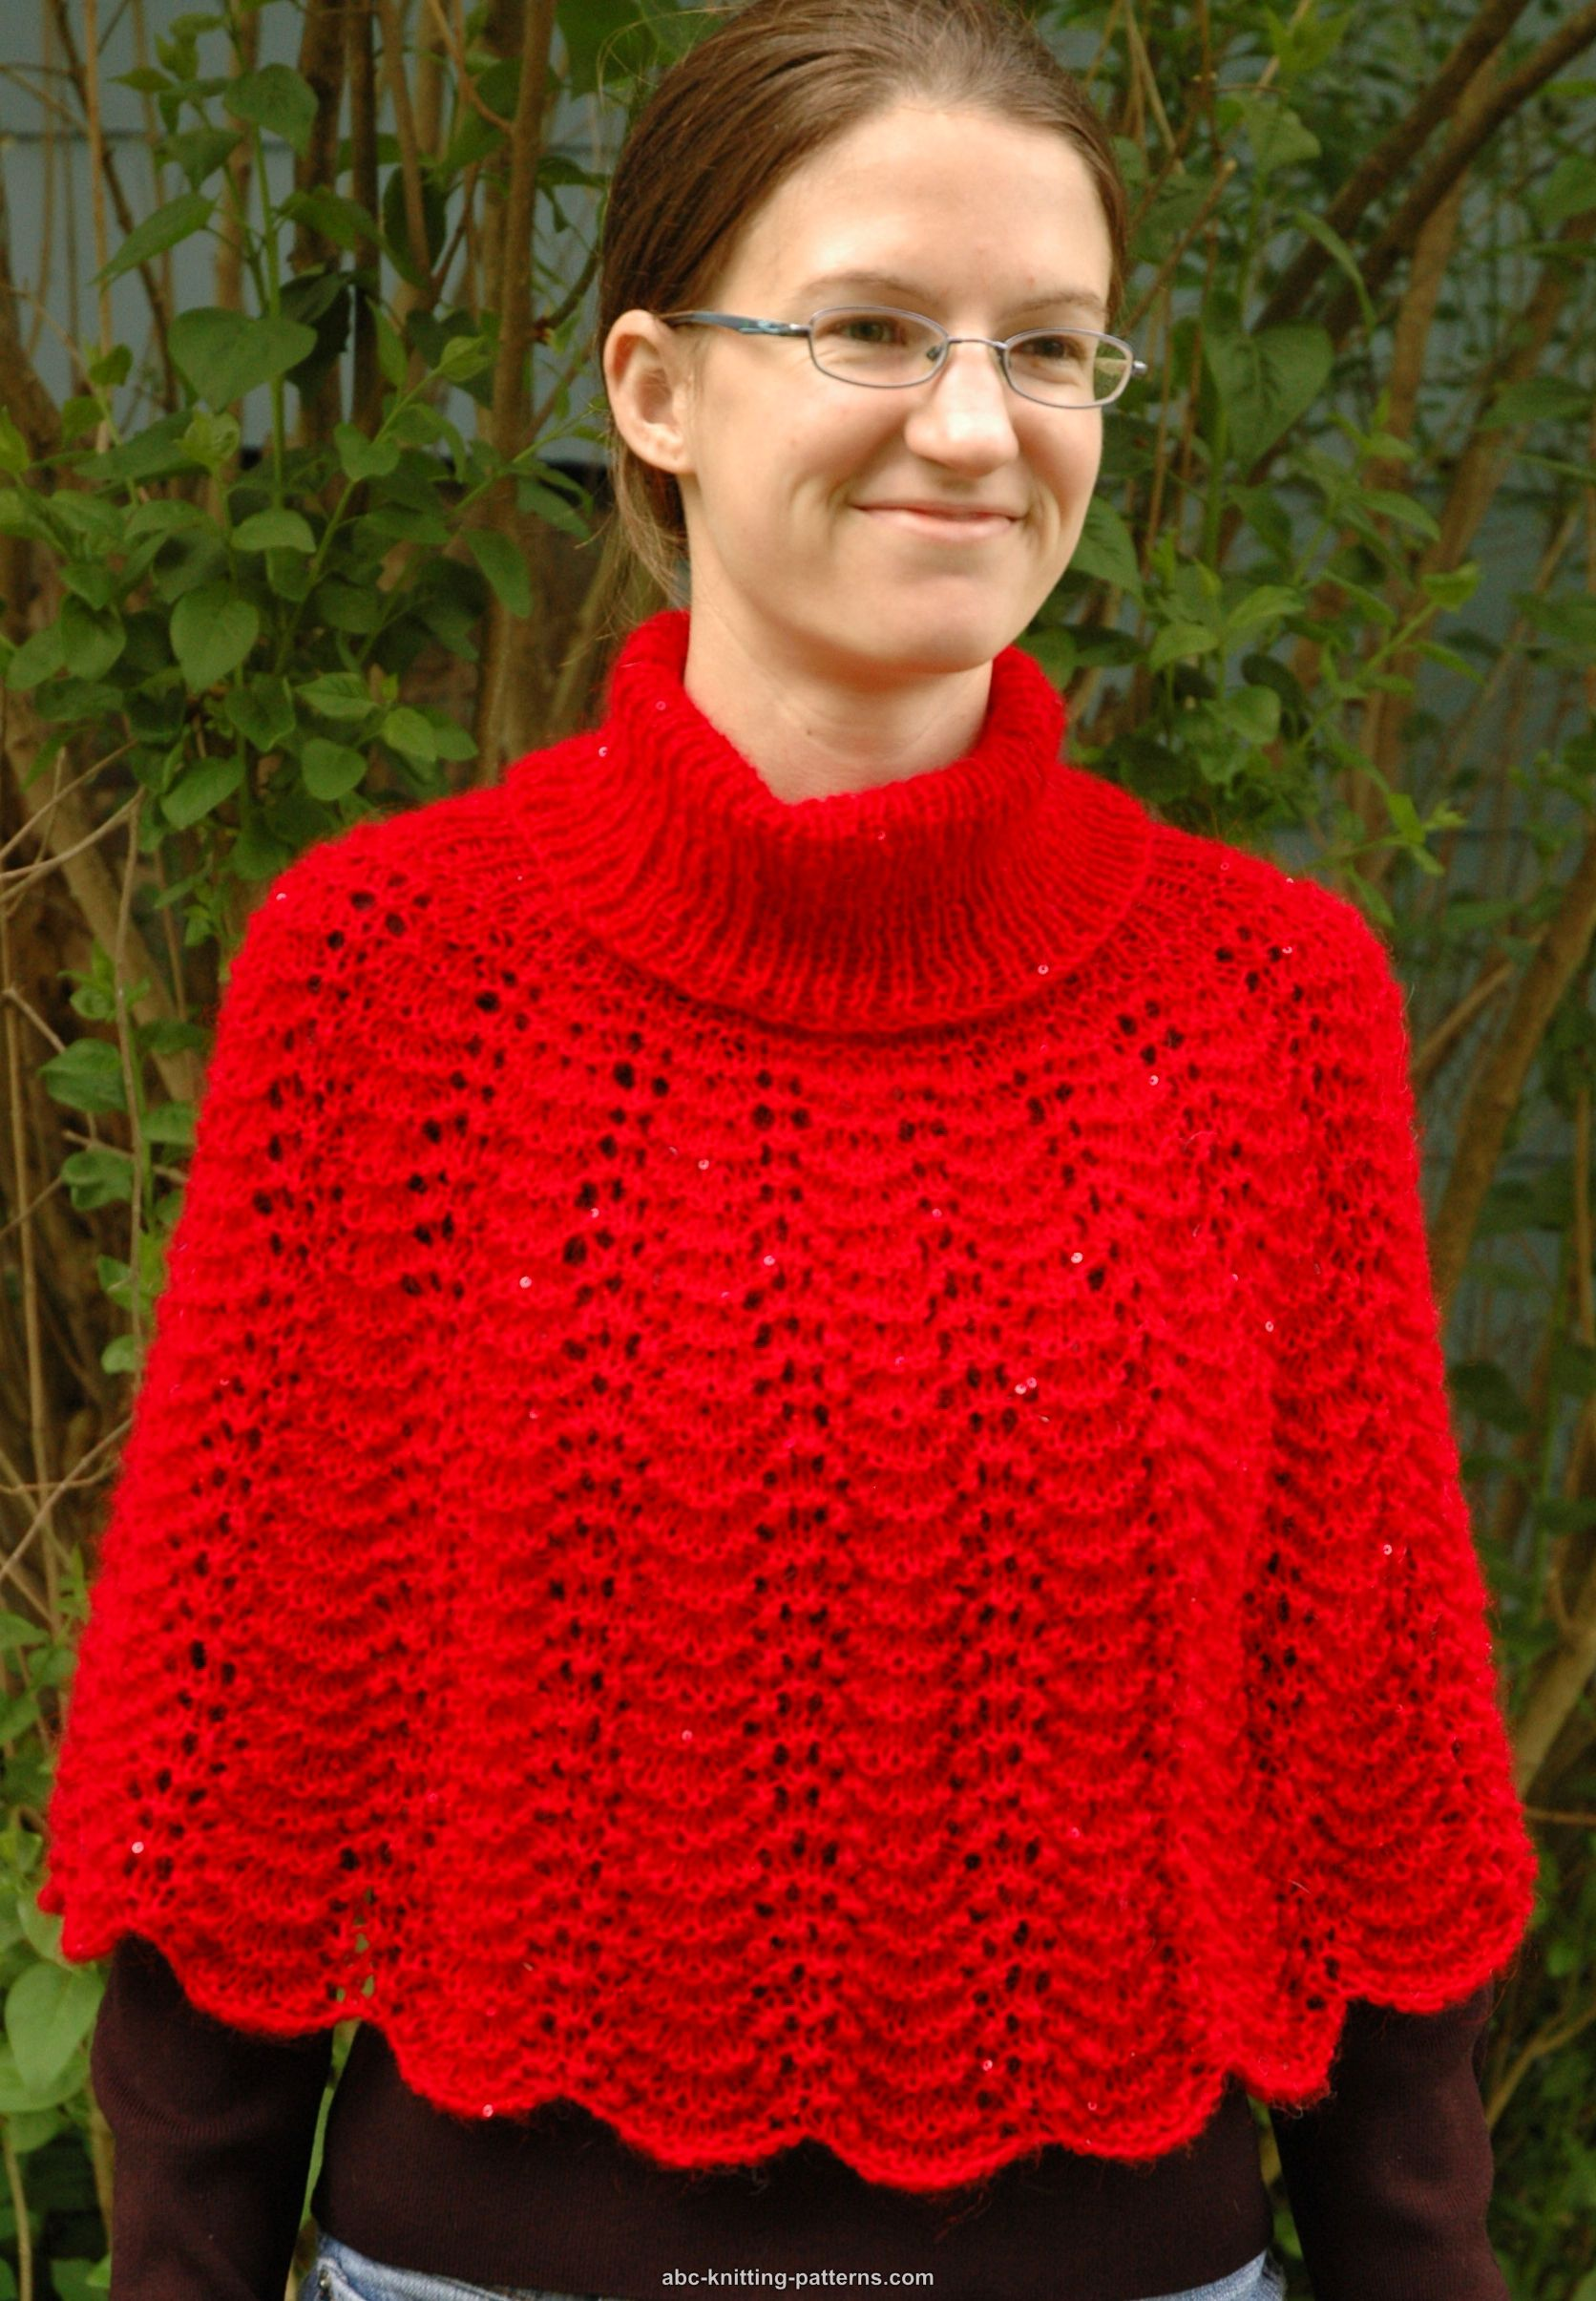 Knitting Patterns Galore - Little Red Riding Capelet